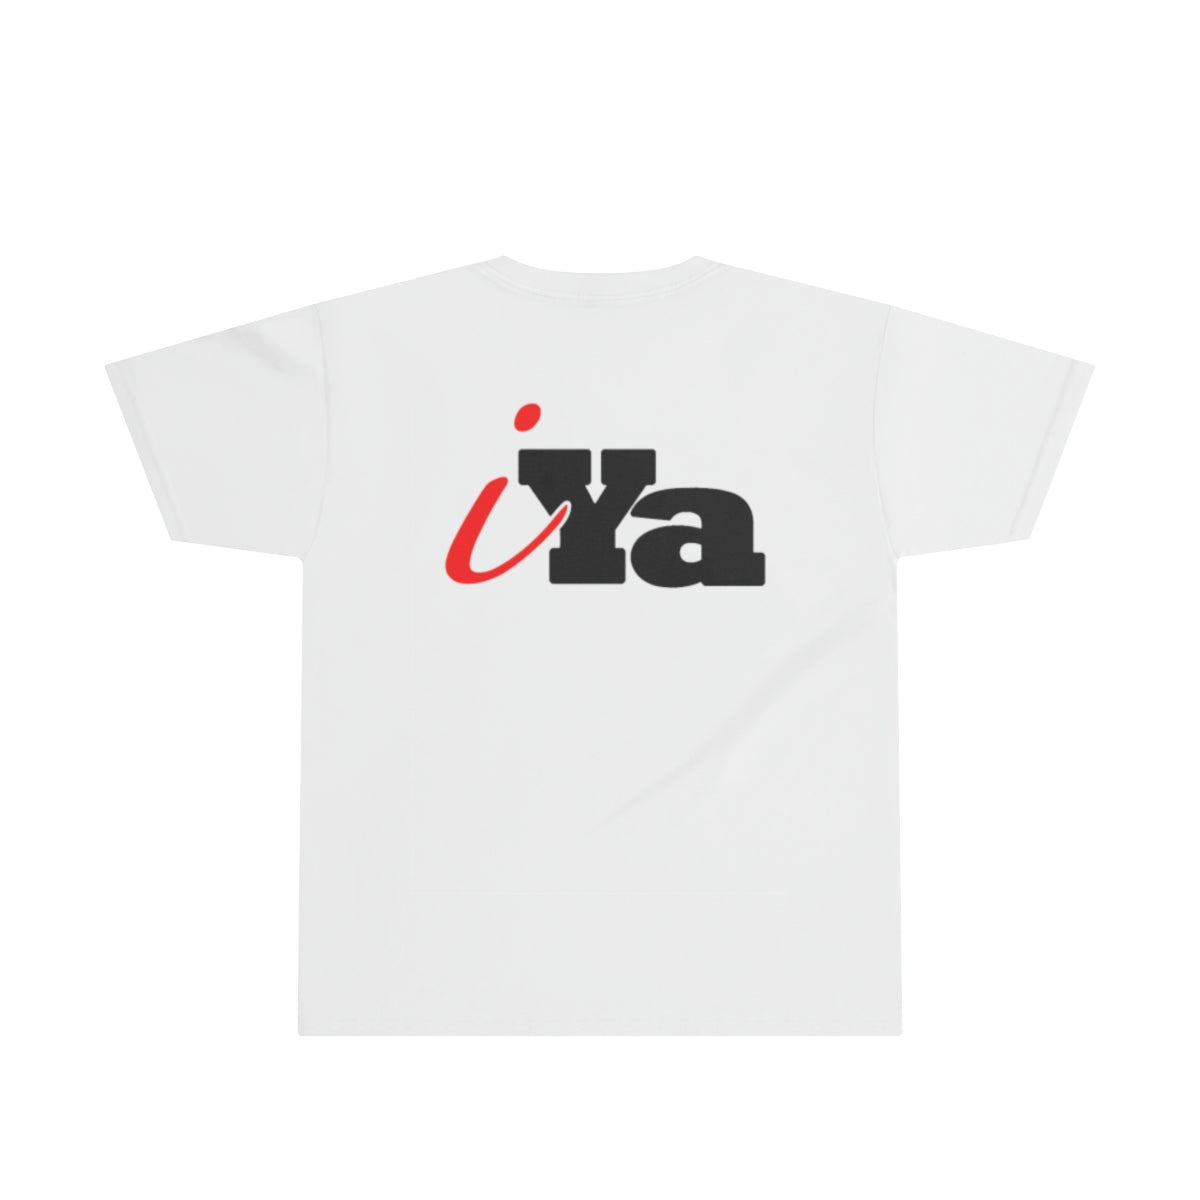 Youth Lightweight iYa Tee